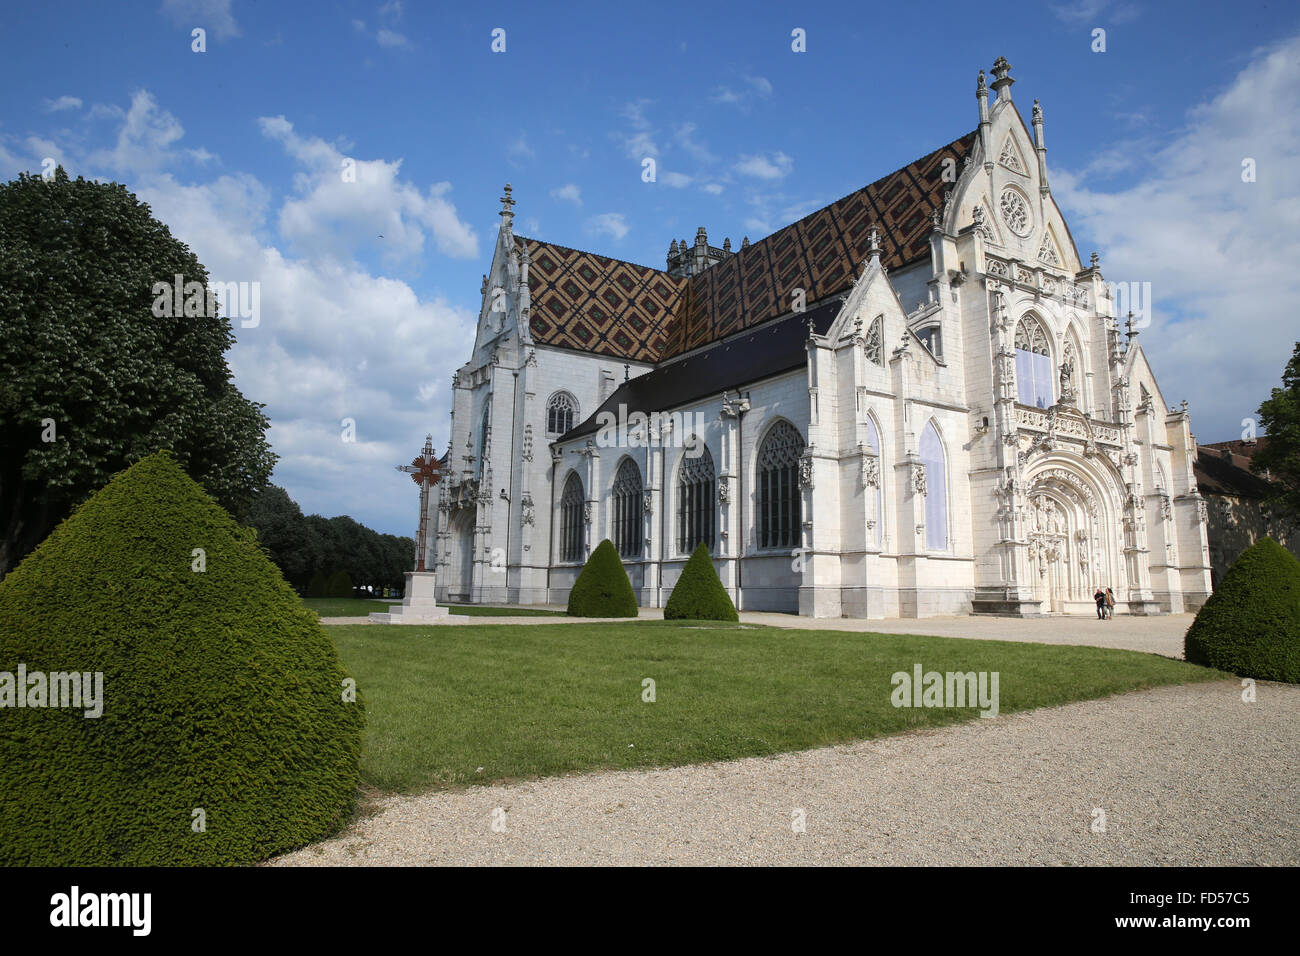 The royal monastery of Brou.  The church is a masterpiece of the Flamboyant Gothic style. - Stock Image